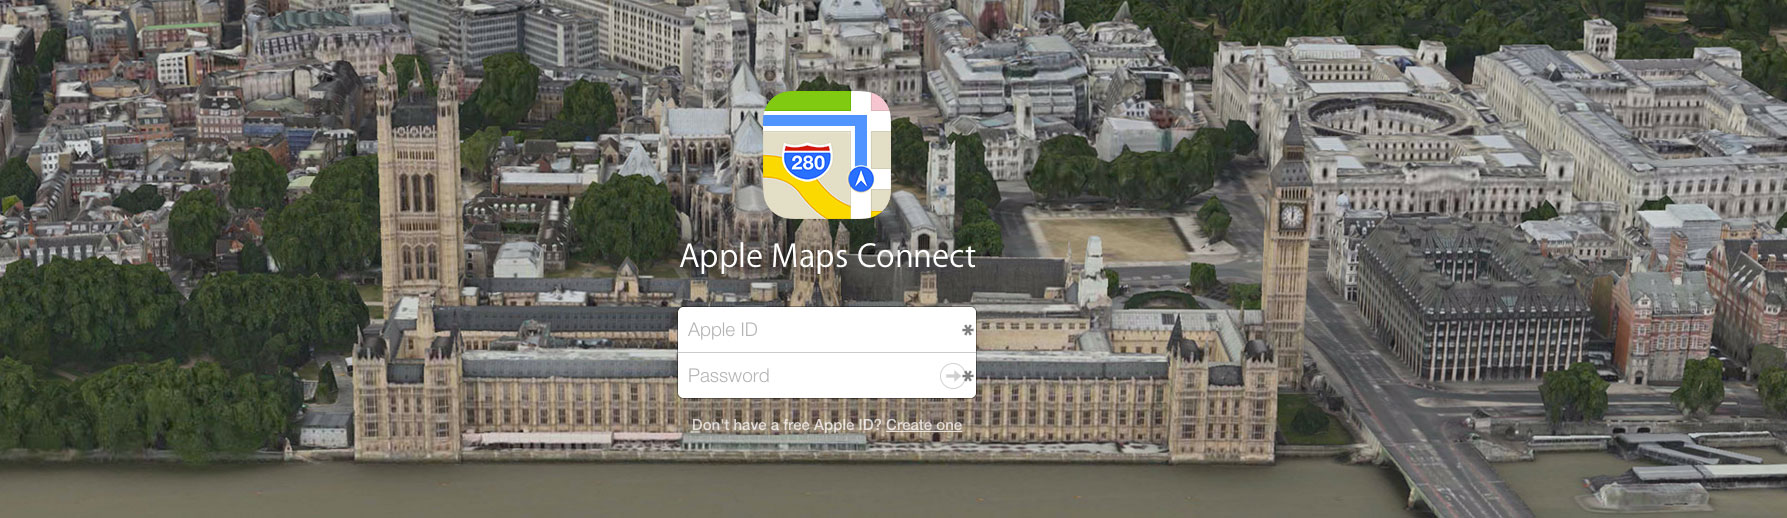 apple-maps-connect-1 How to Claim Your Business on Apple Maps Connect